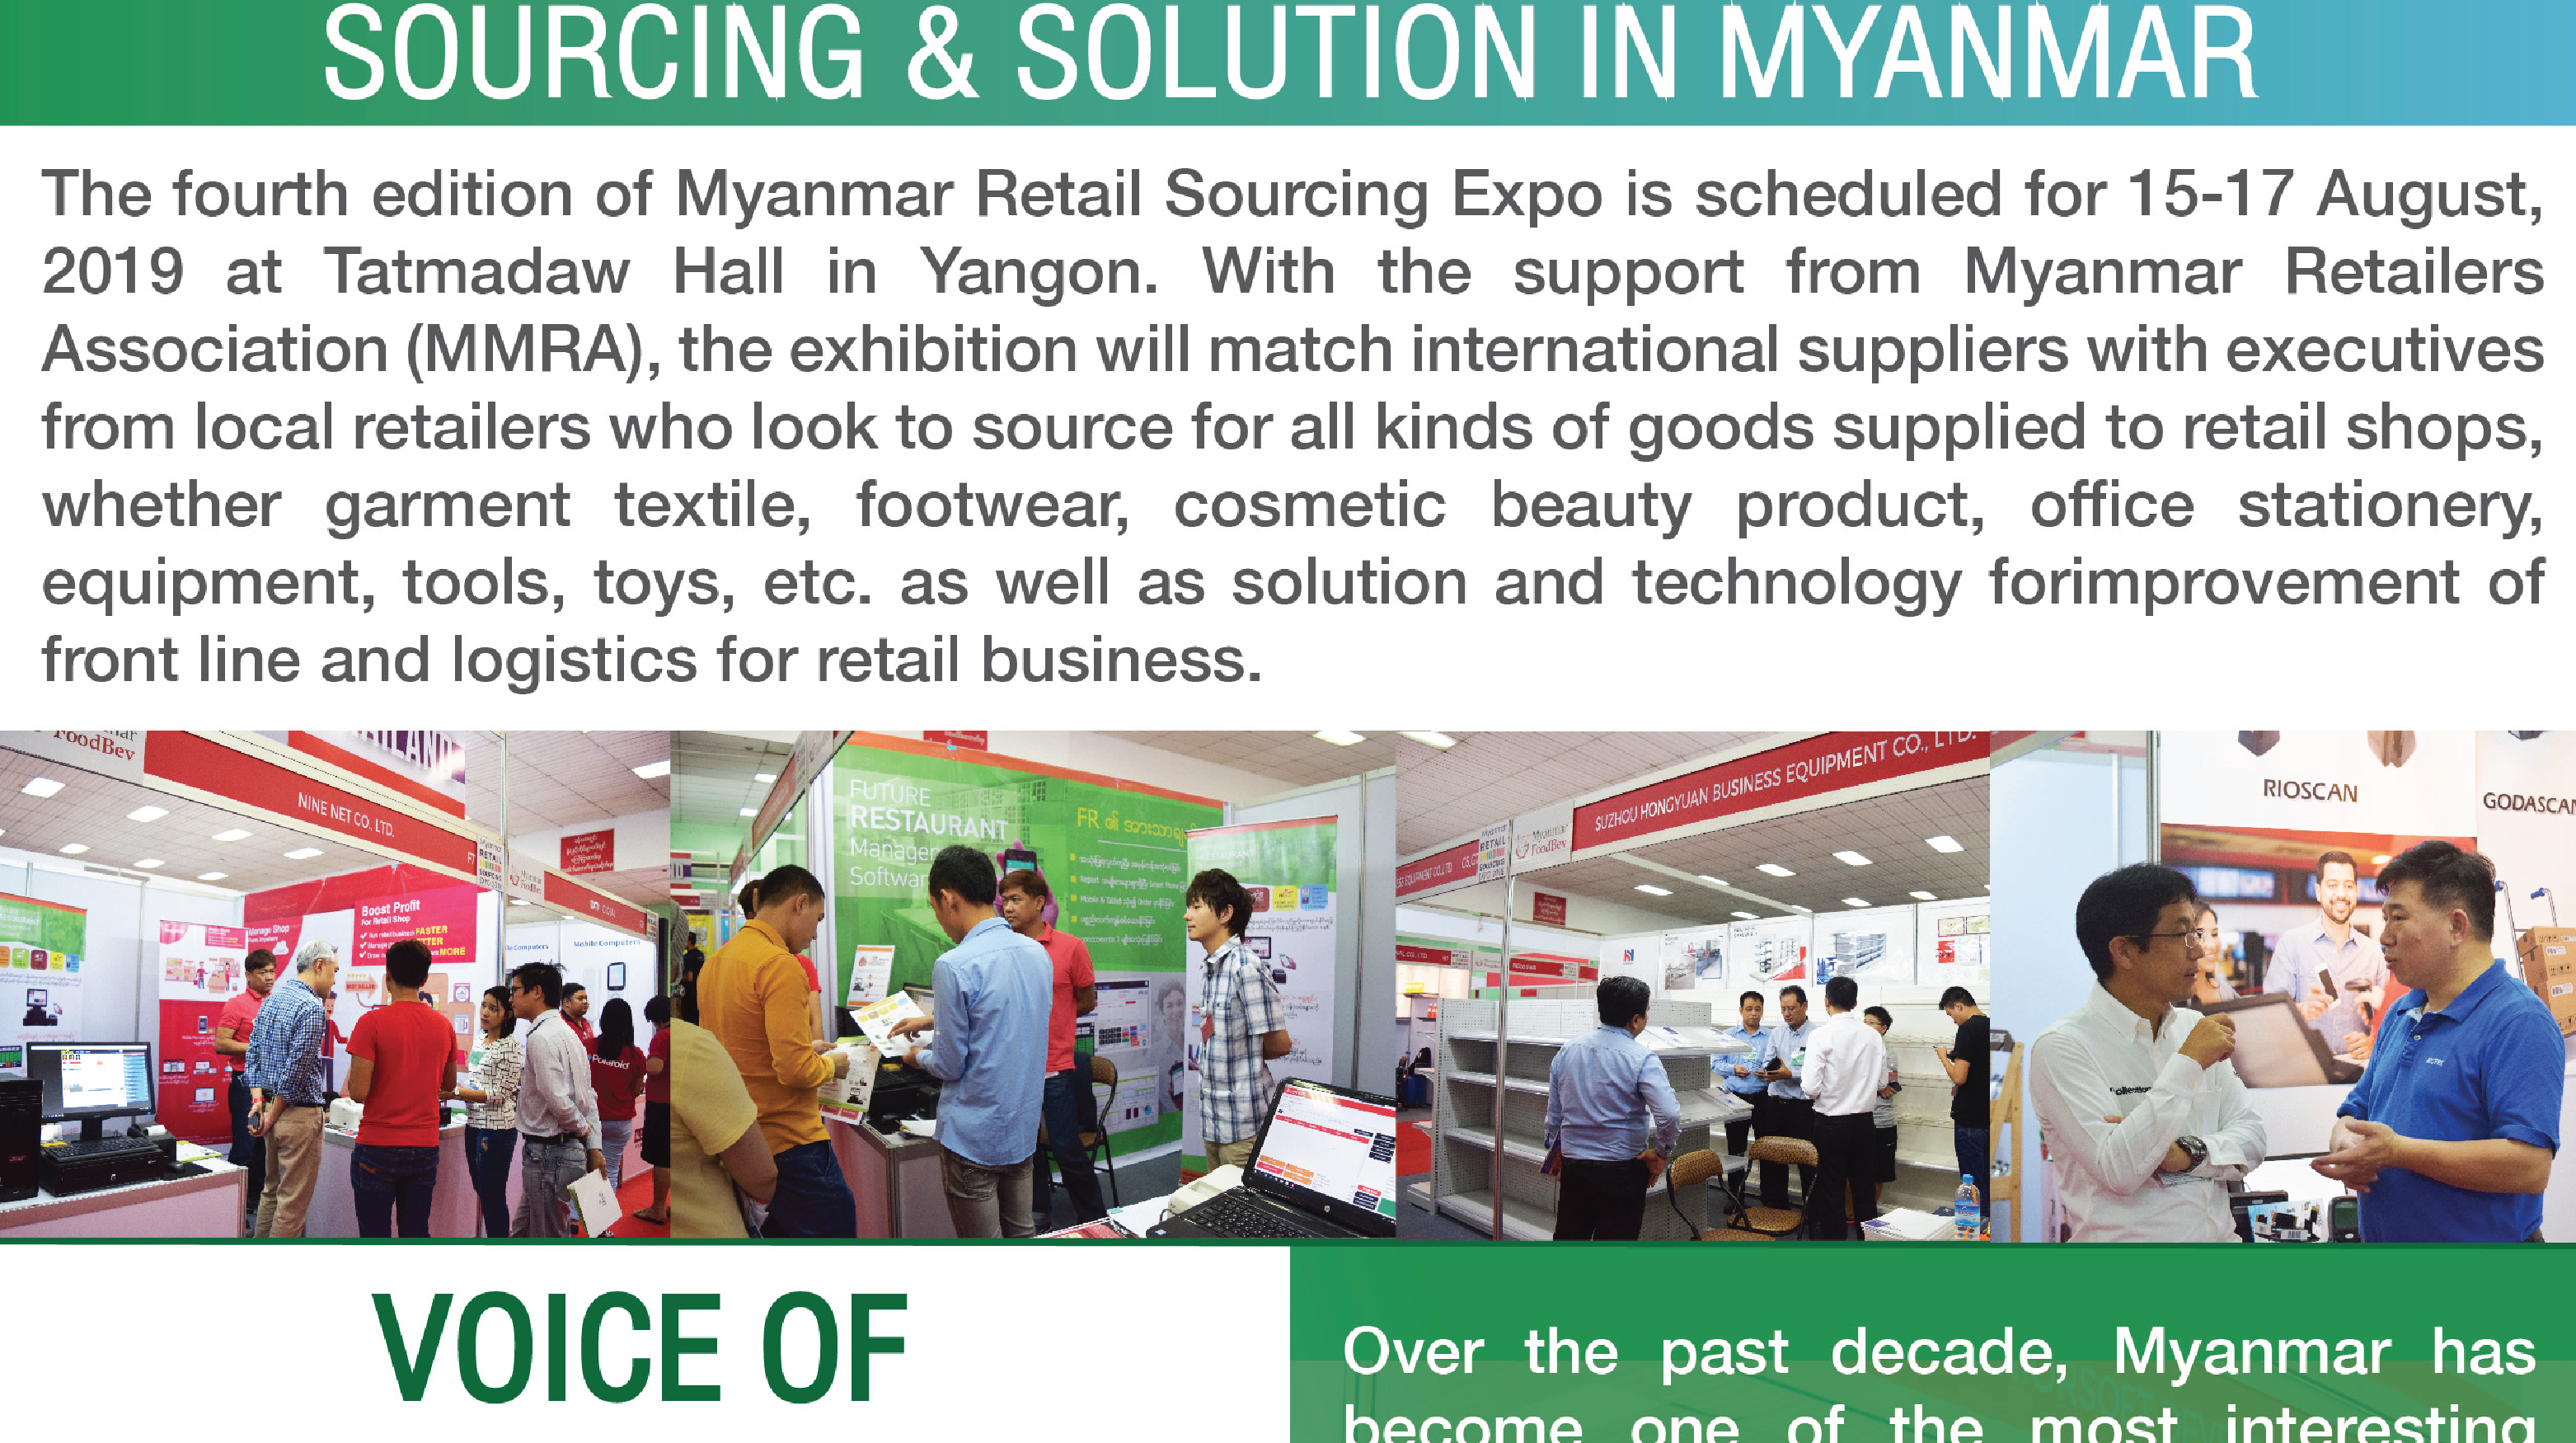 One stop platform for retail business sourcing & solution in Myanmar